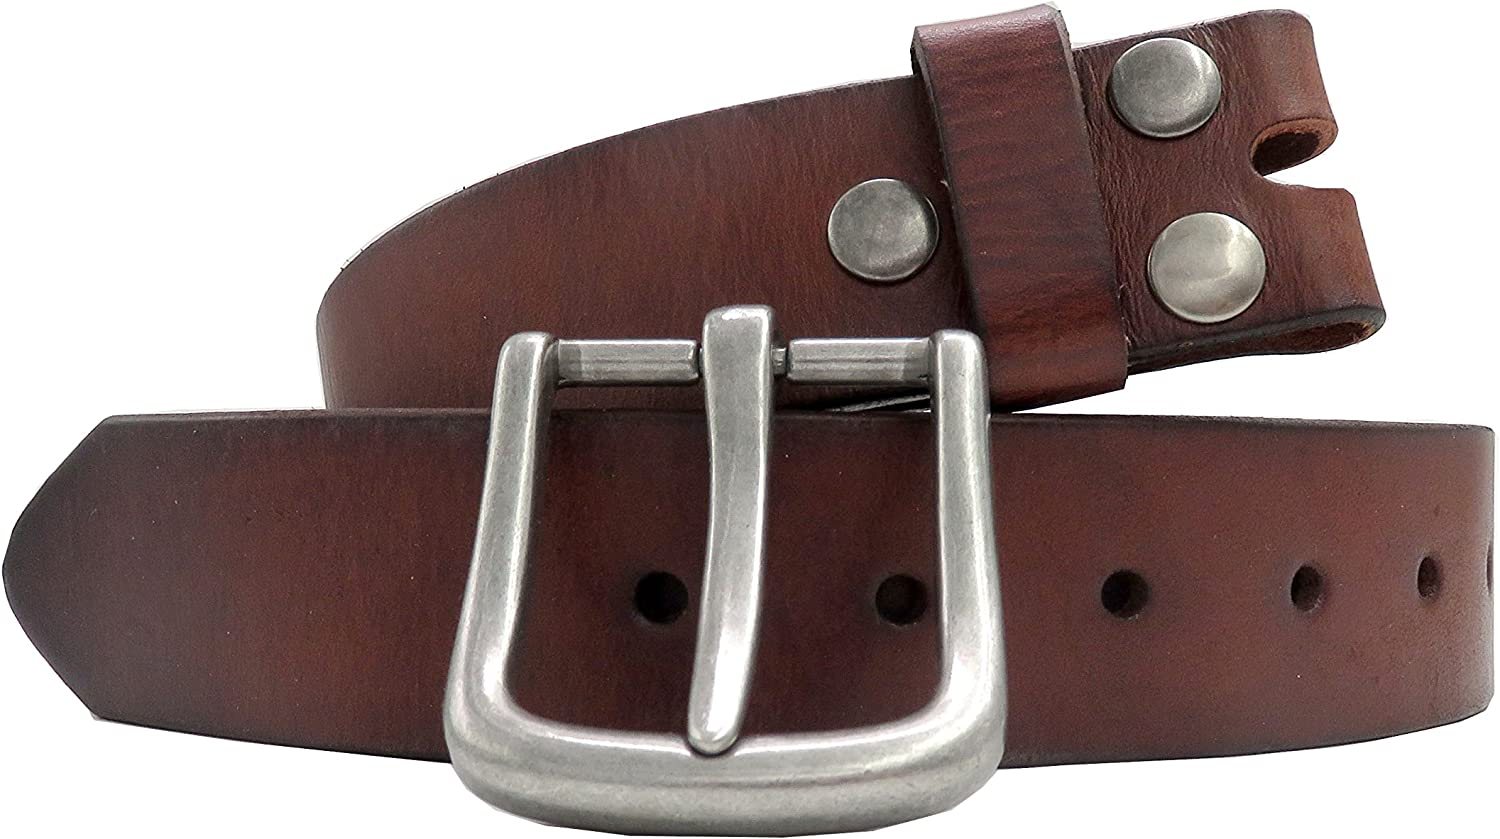 NEW POLISHED BUCKLE GENUINE BROWN MENS LEATHER BELT COWHIDE JEANS COMBATS SUIT